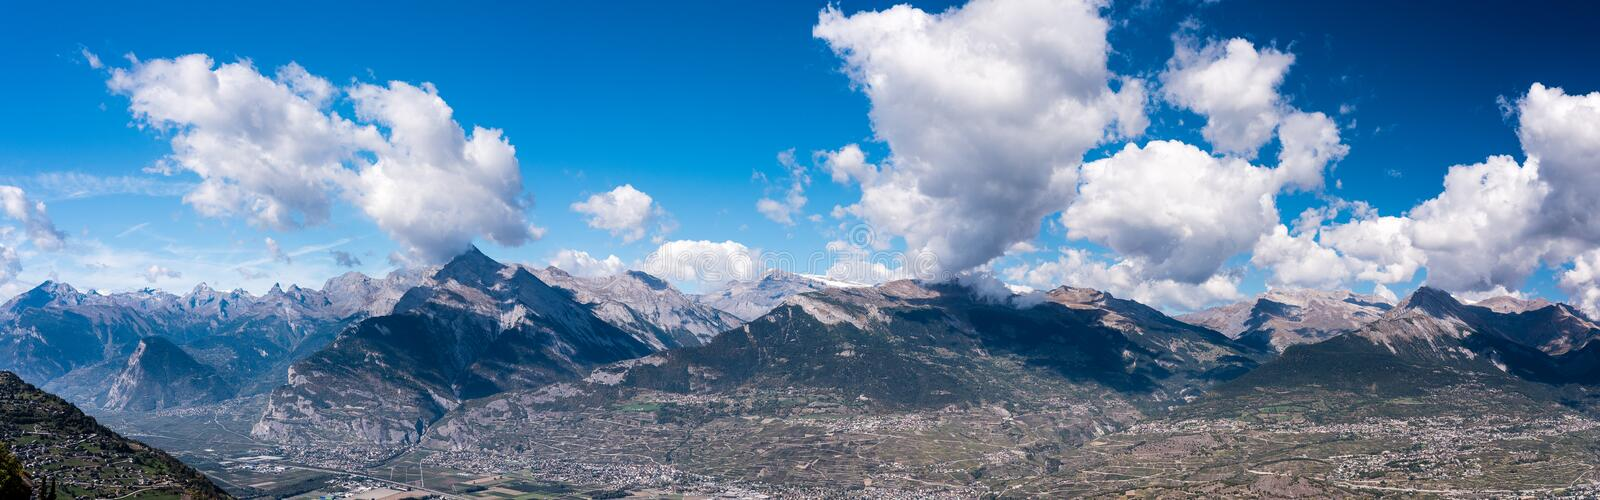 Alpine mountains with shadows of clouds, large panorama royalty free stock photo